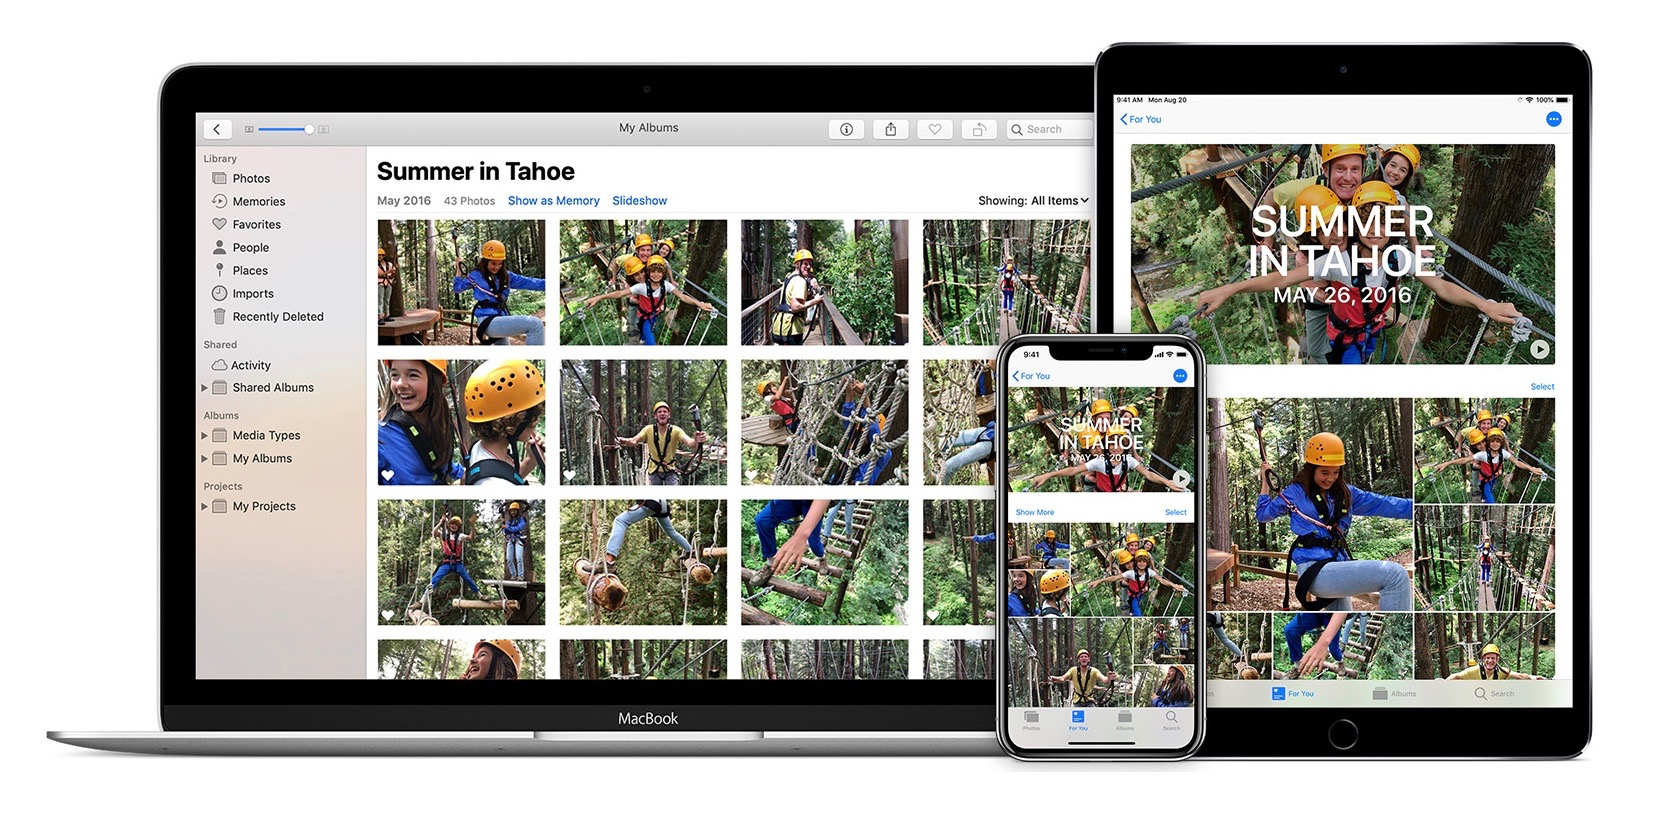 How to download photos from apple mac to ipad